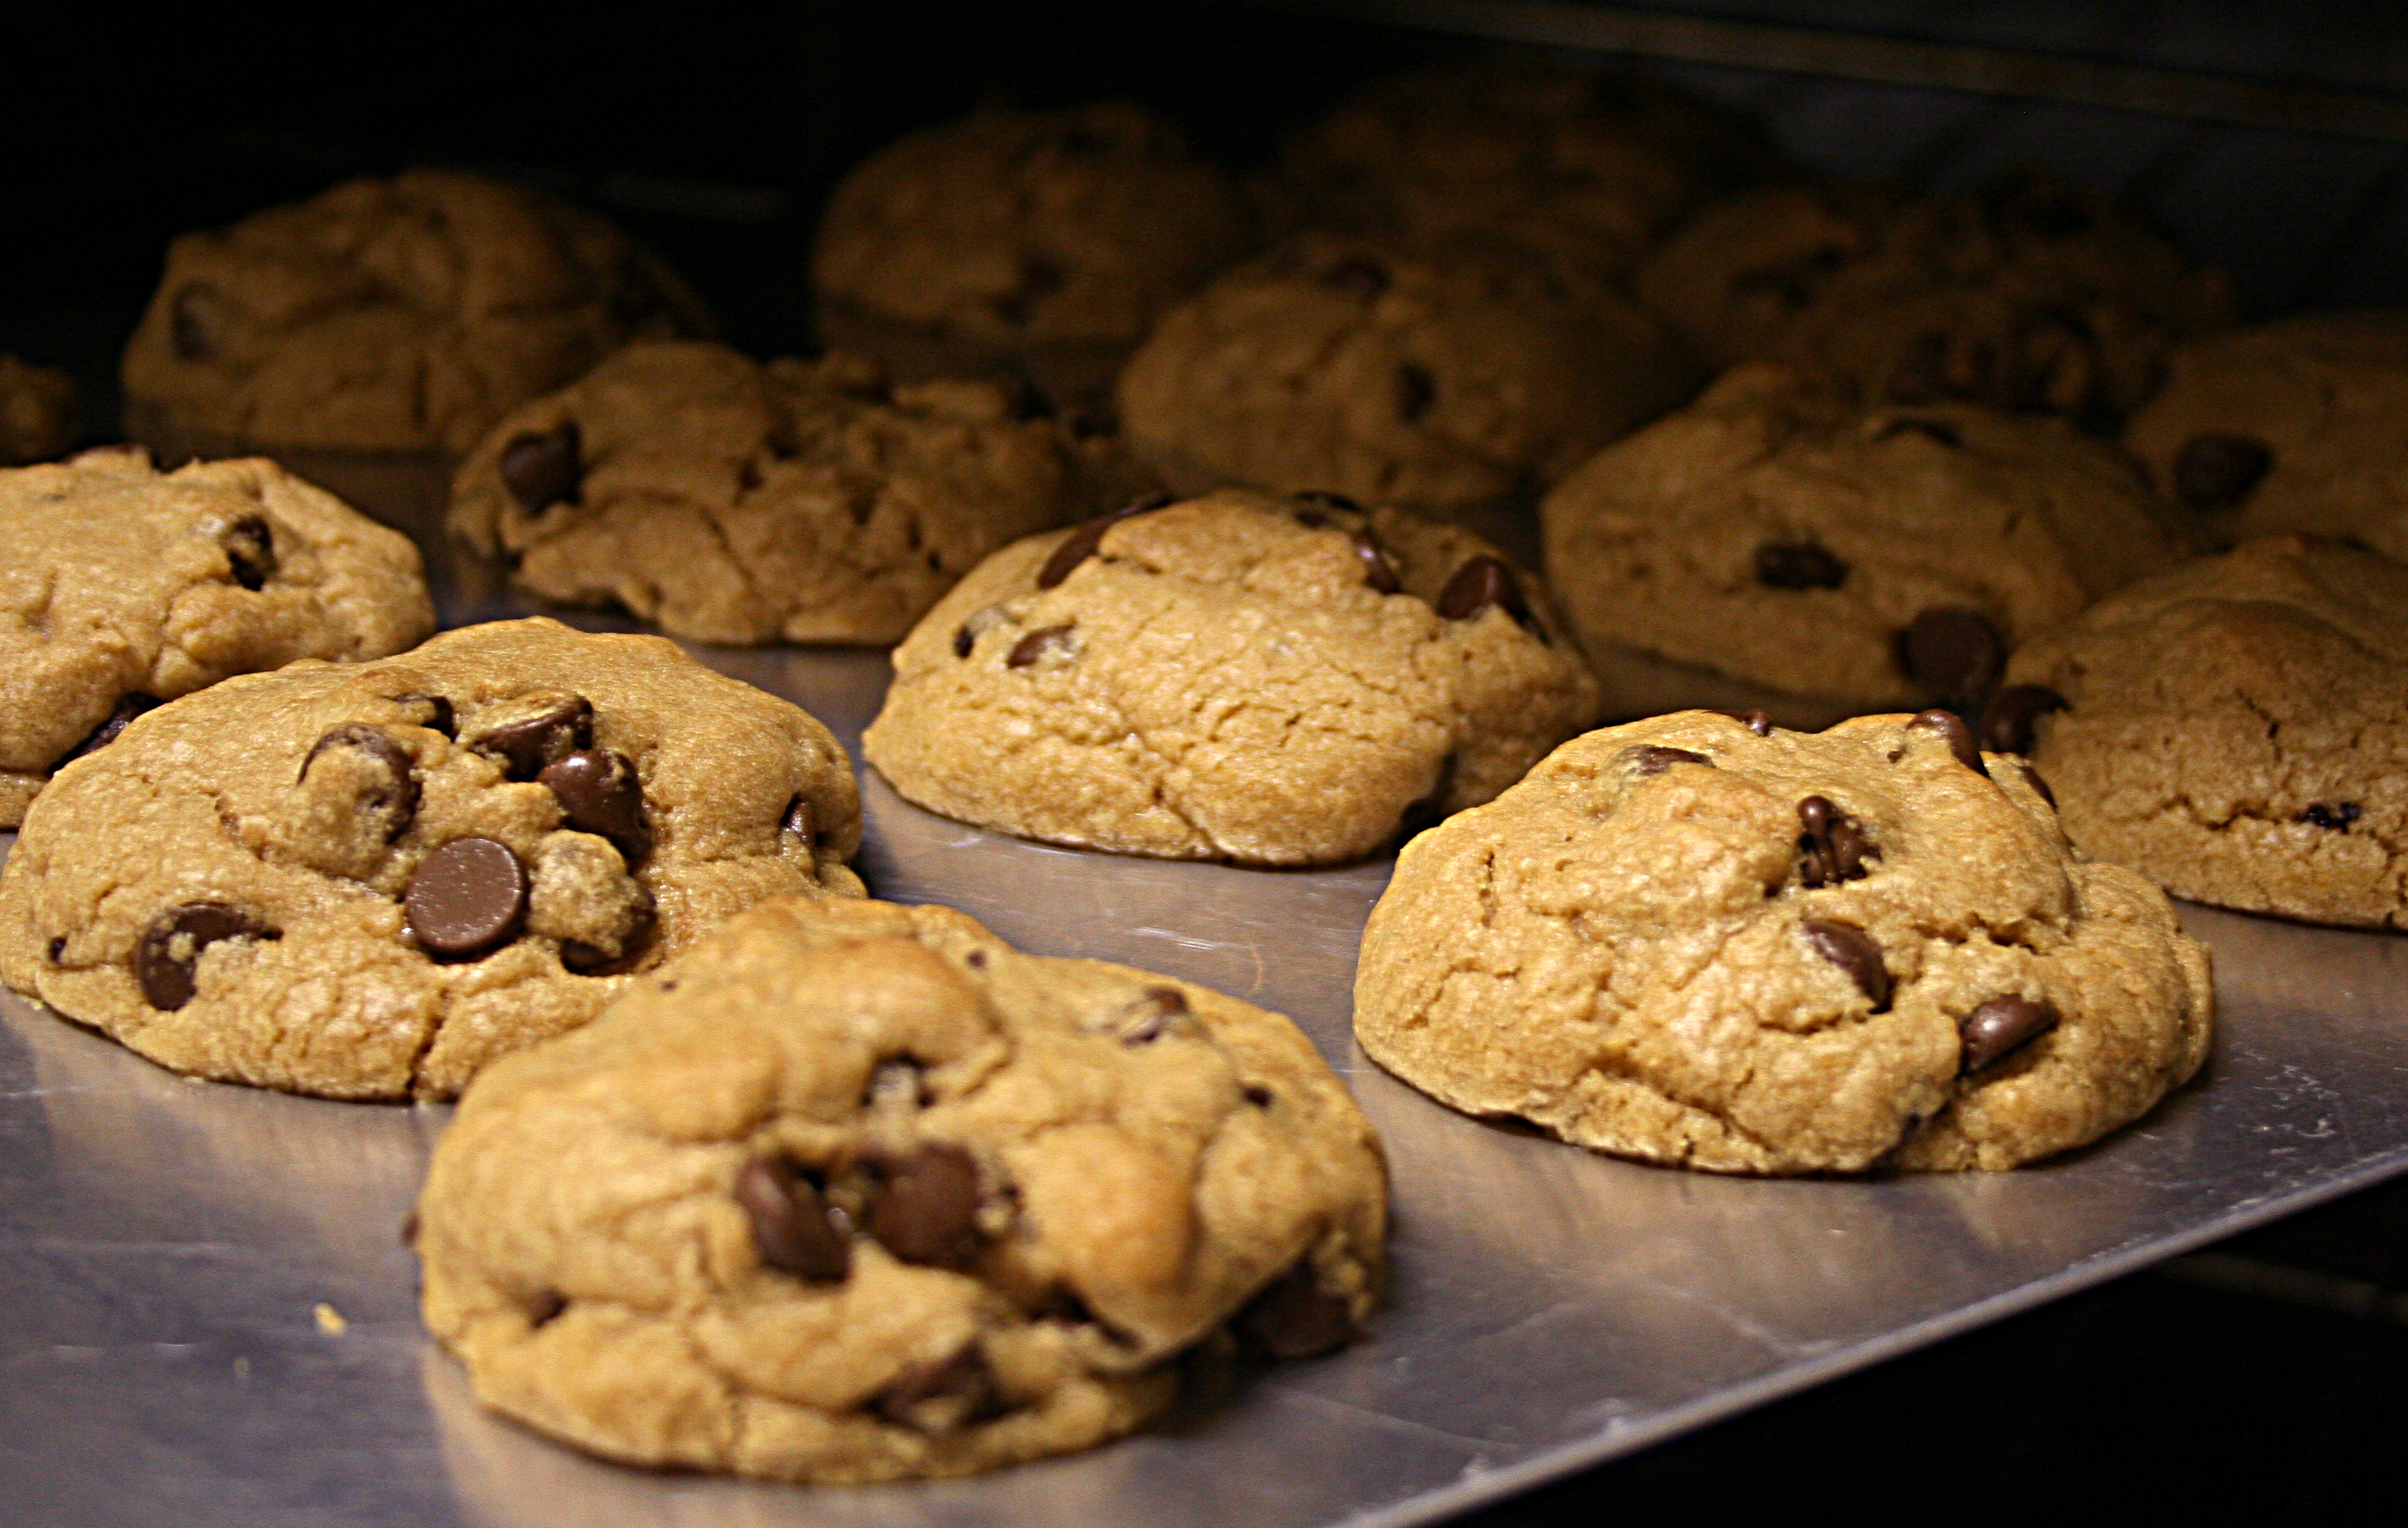 Baking Chocolate Chip Cookies Using Cake Mix